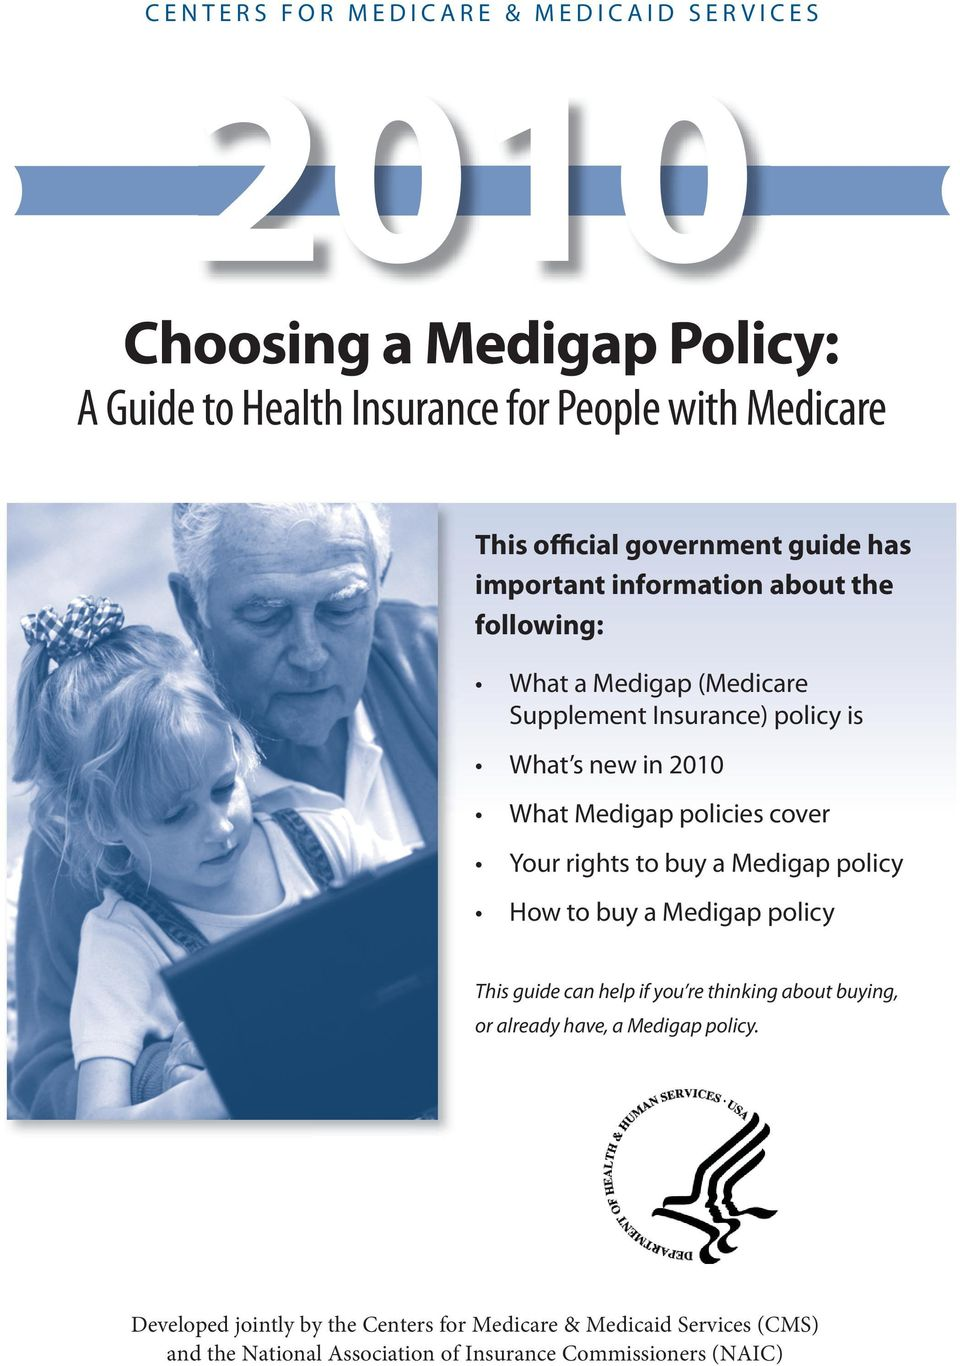 Medigap policies cover Your rights to buy a Medigap policy How to buy a Medigap policy This guide can help if you re thinking about buying, or